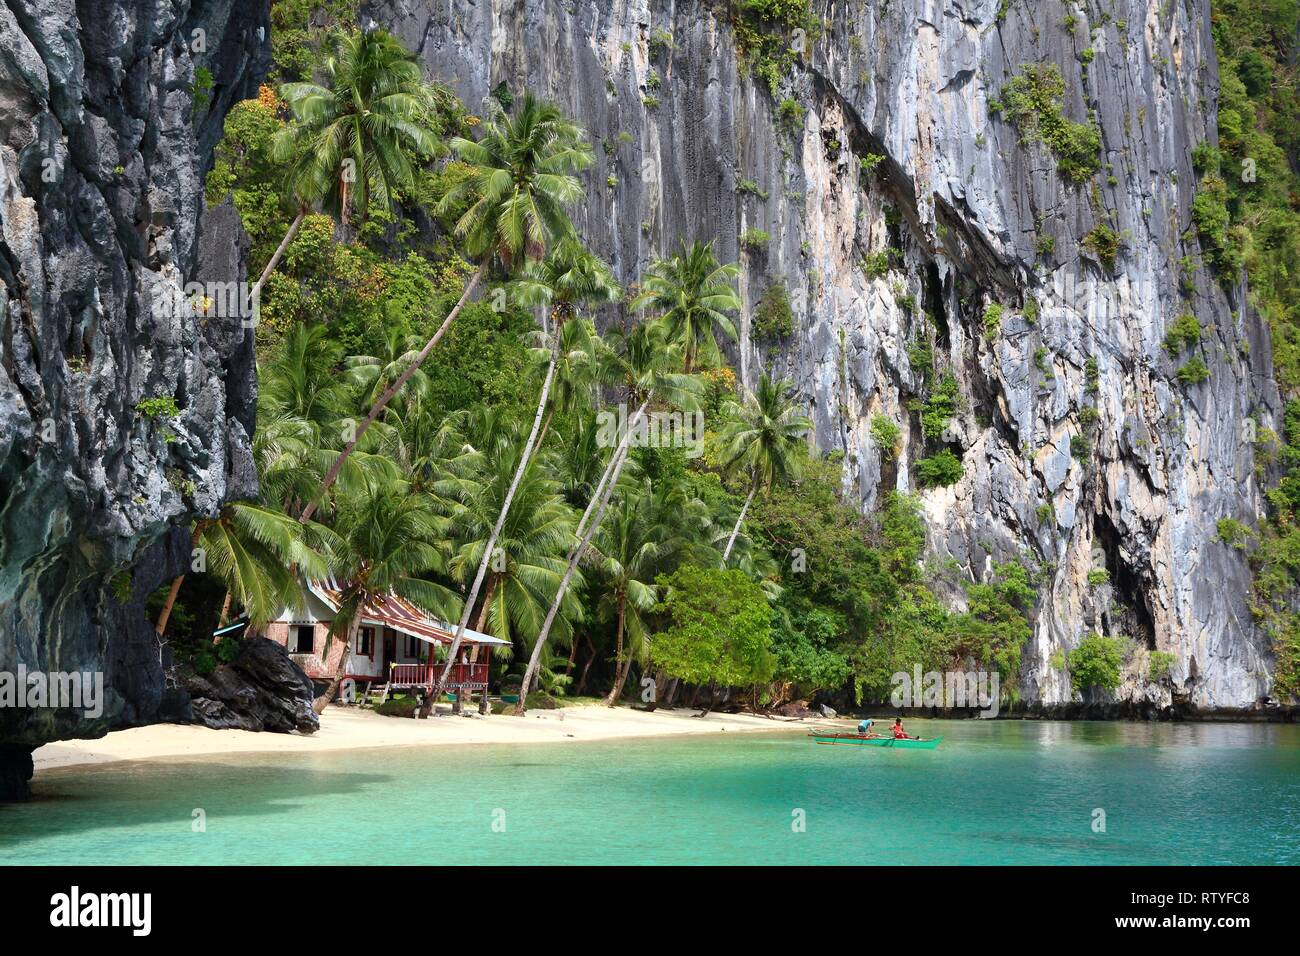 Philippines Nature El Nido Island Hopping Tour View Of